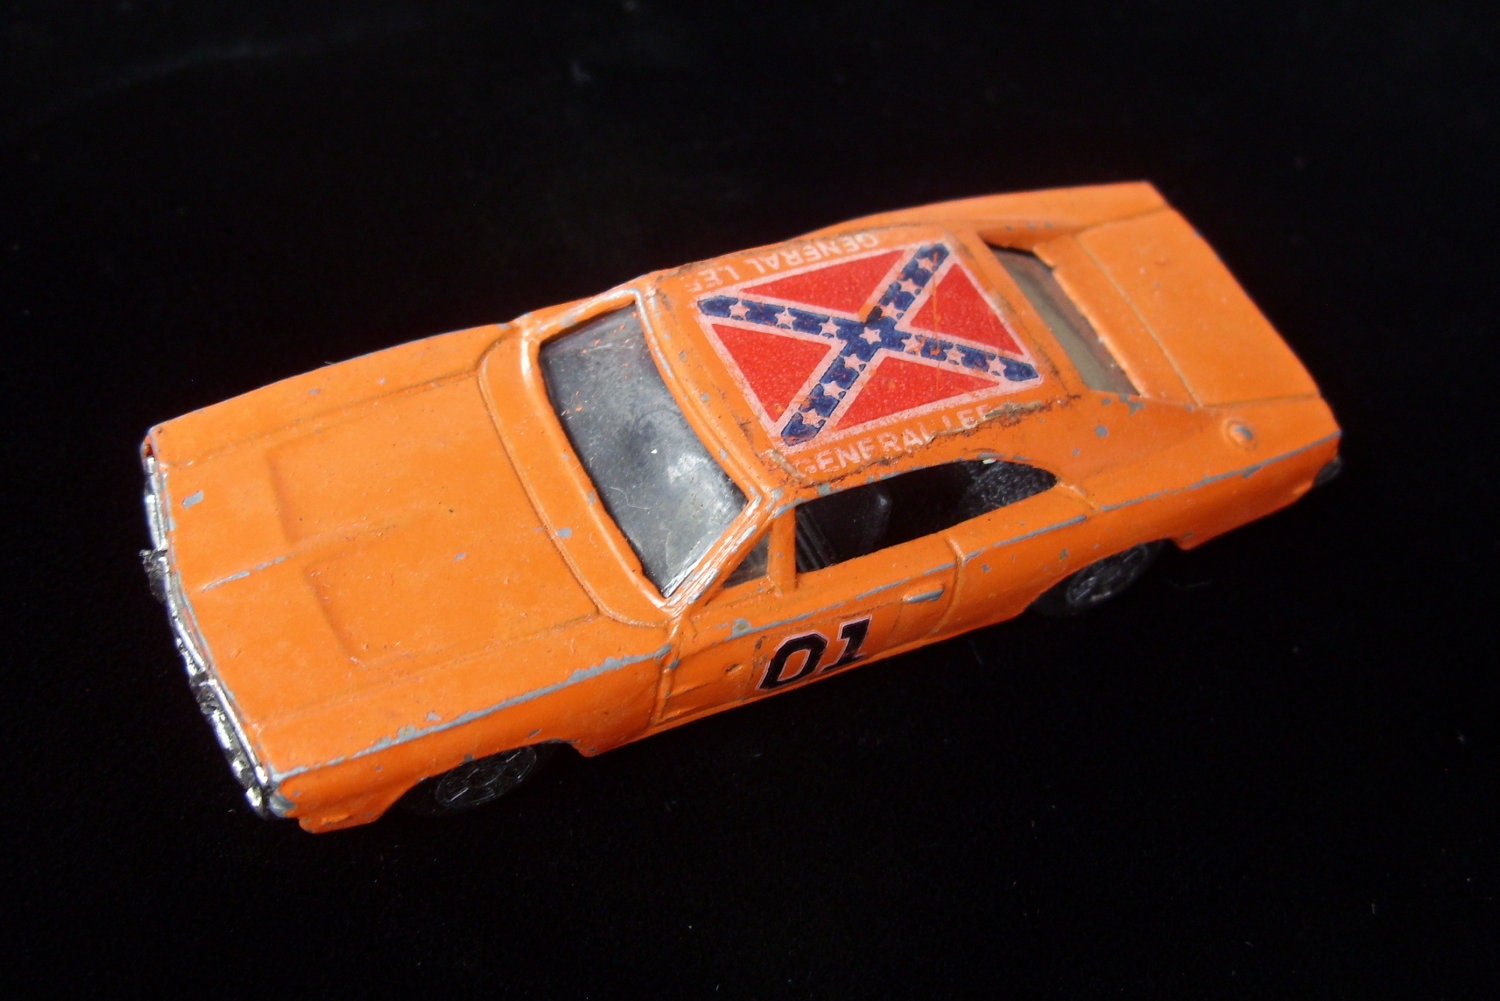 Vintage Dukes of Hazzard General Lee Collectible Toy Car Hot